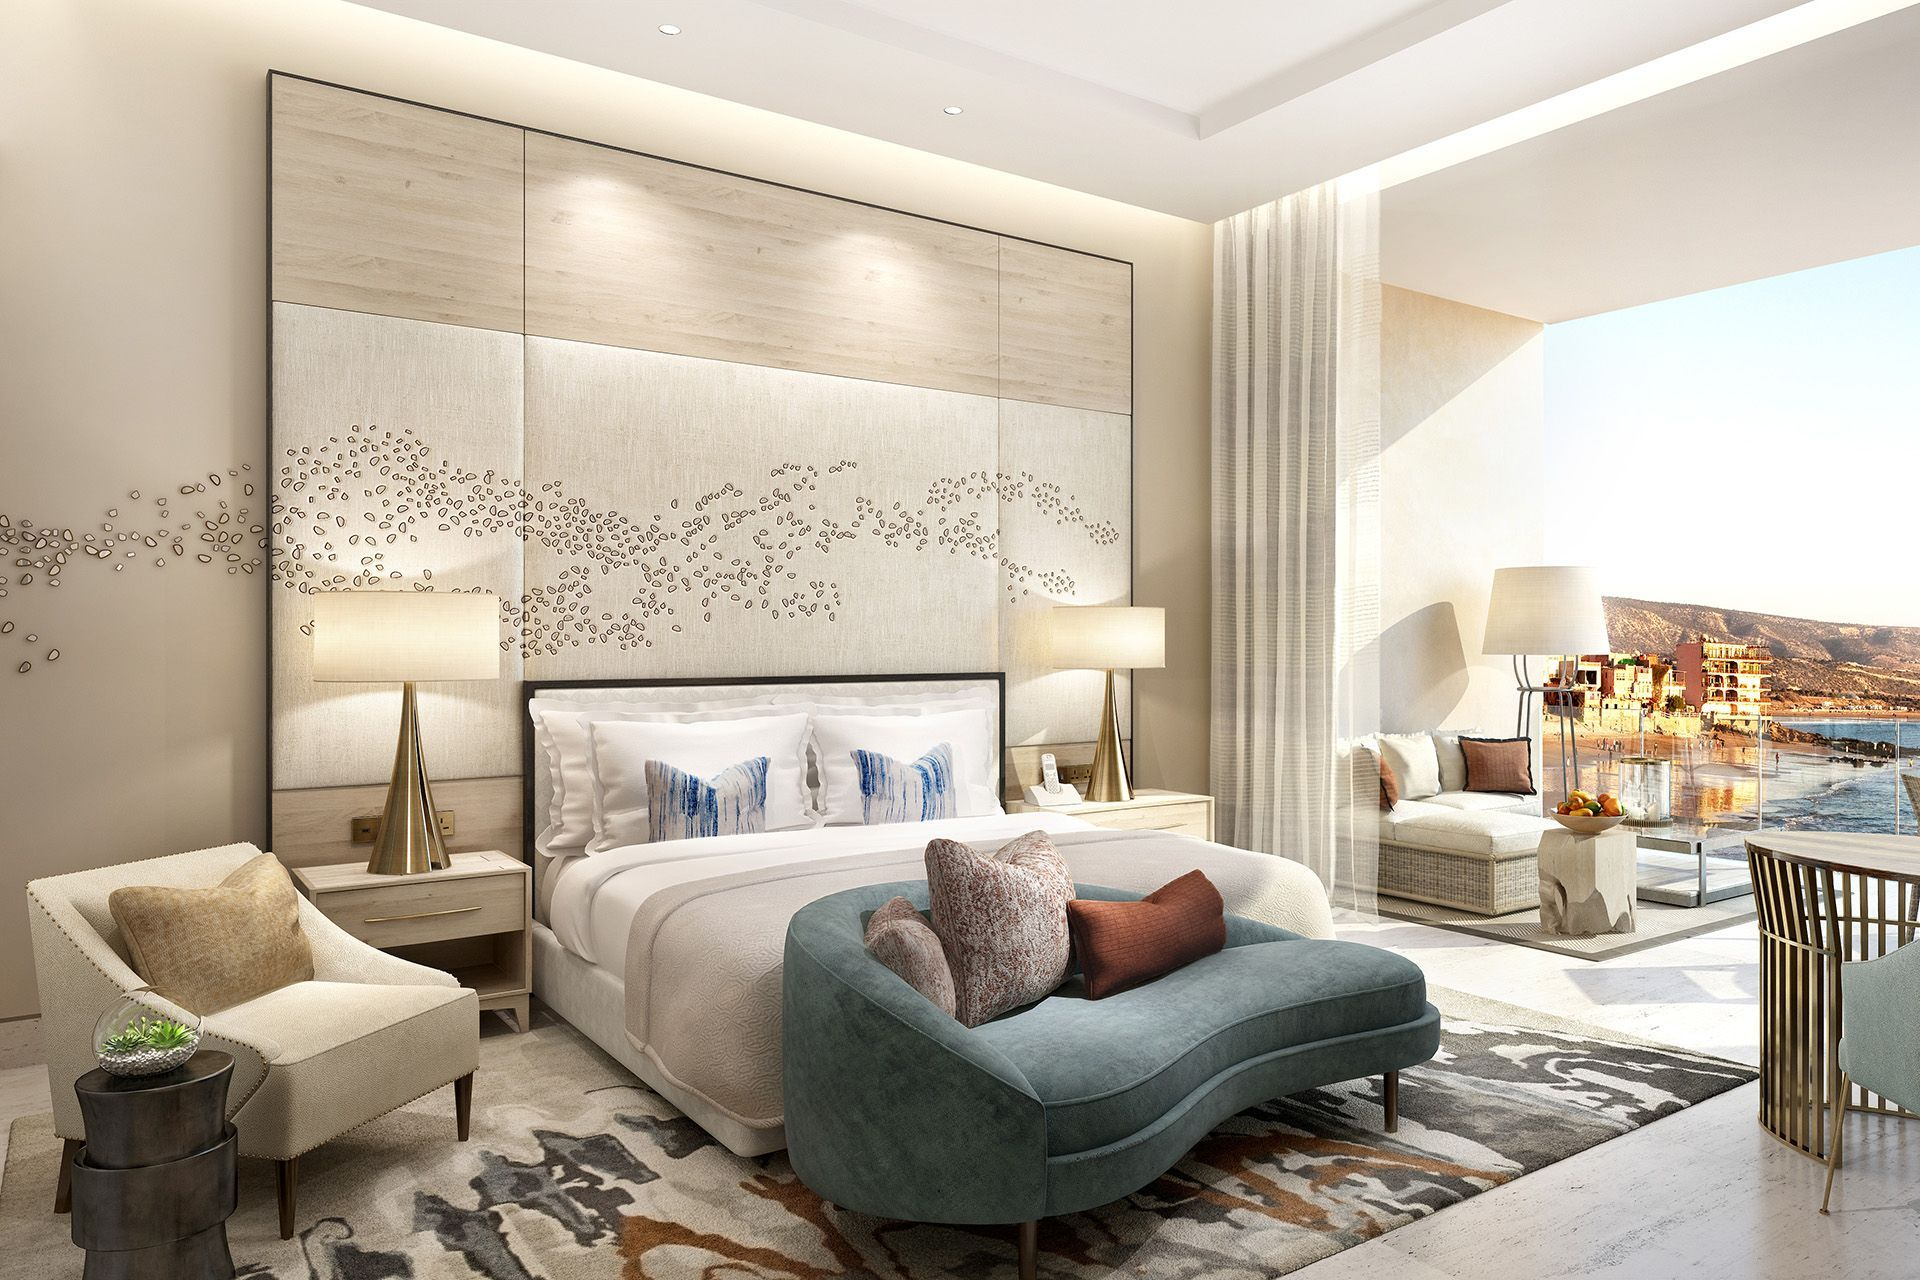 Four seasons taghazout interior designers wimberly for Bedroom designs modern interior design ideas photos